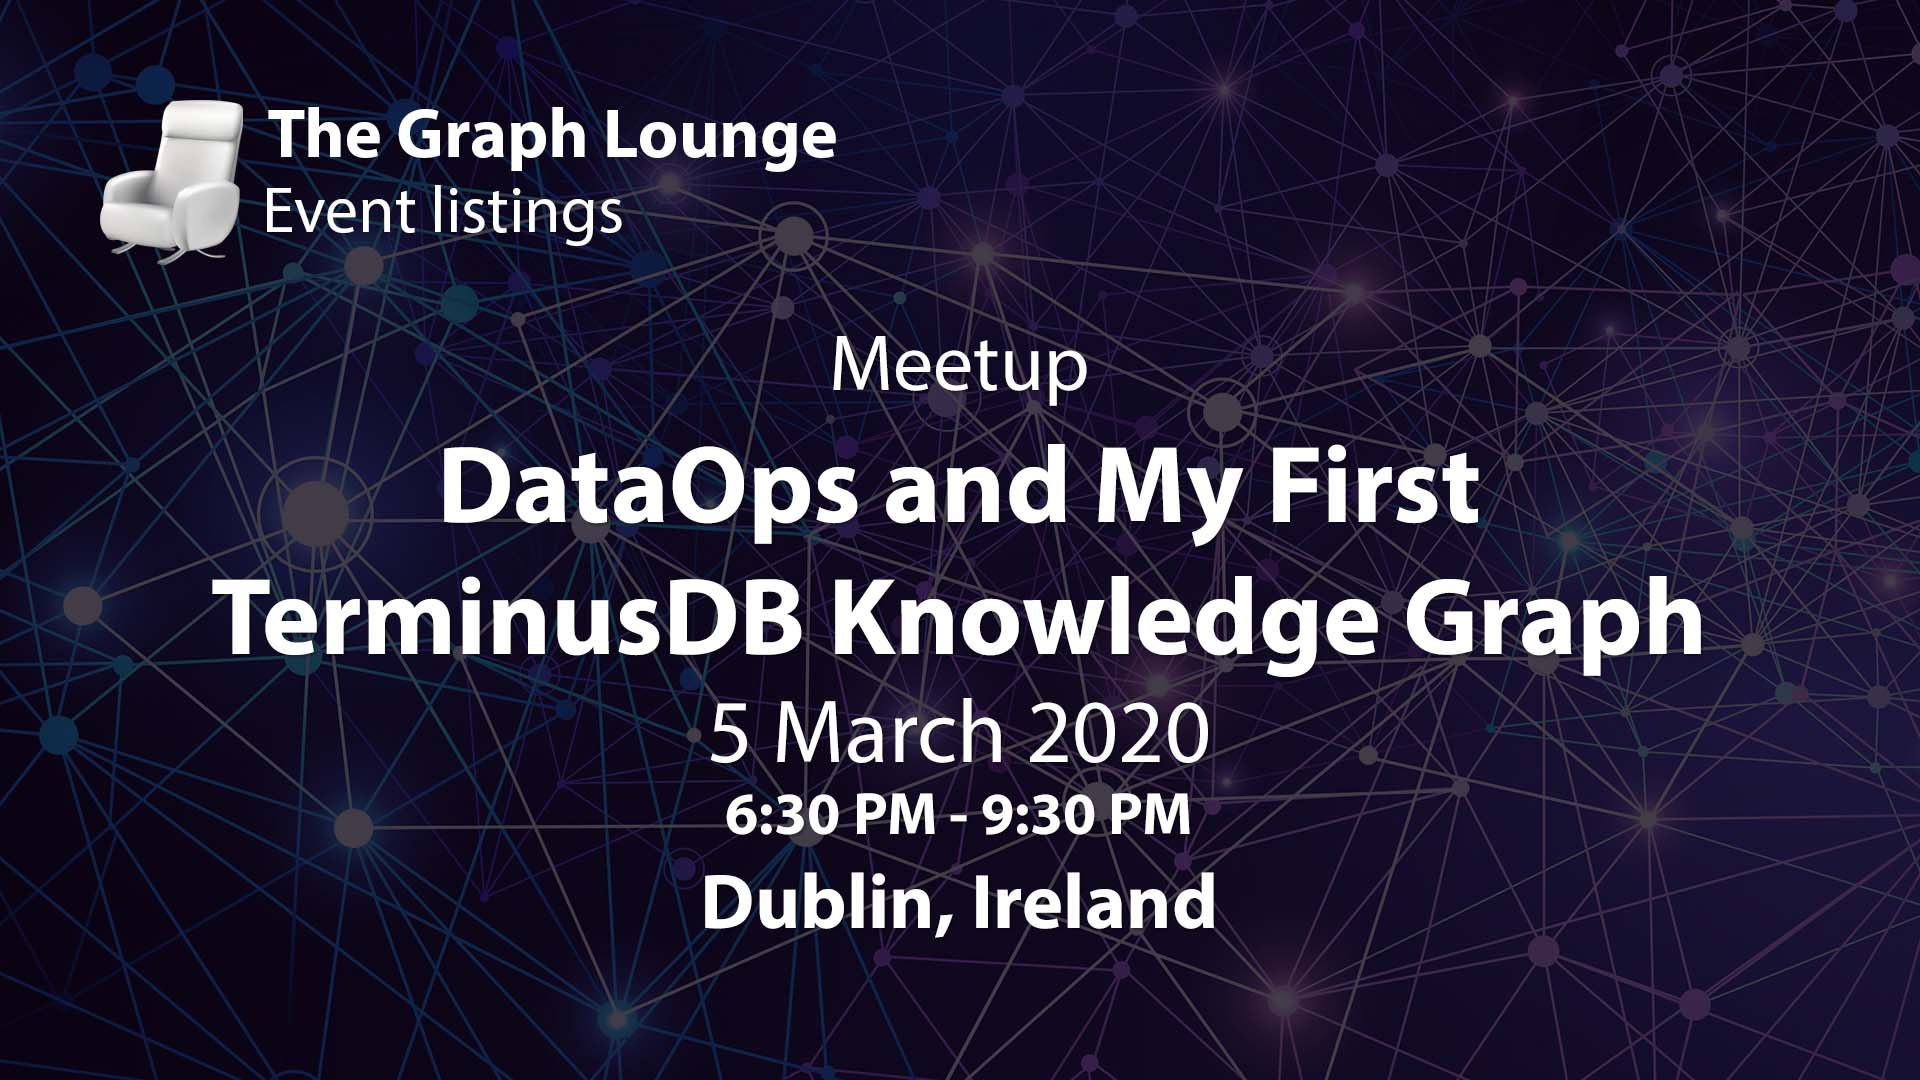 DataOps and My First TerminusDB Knowledge Graph